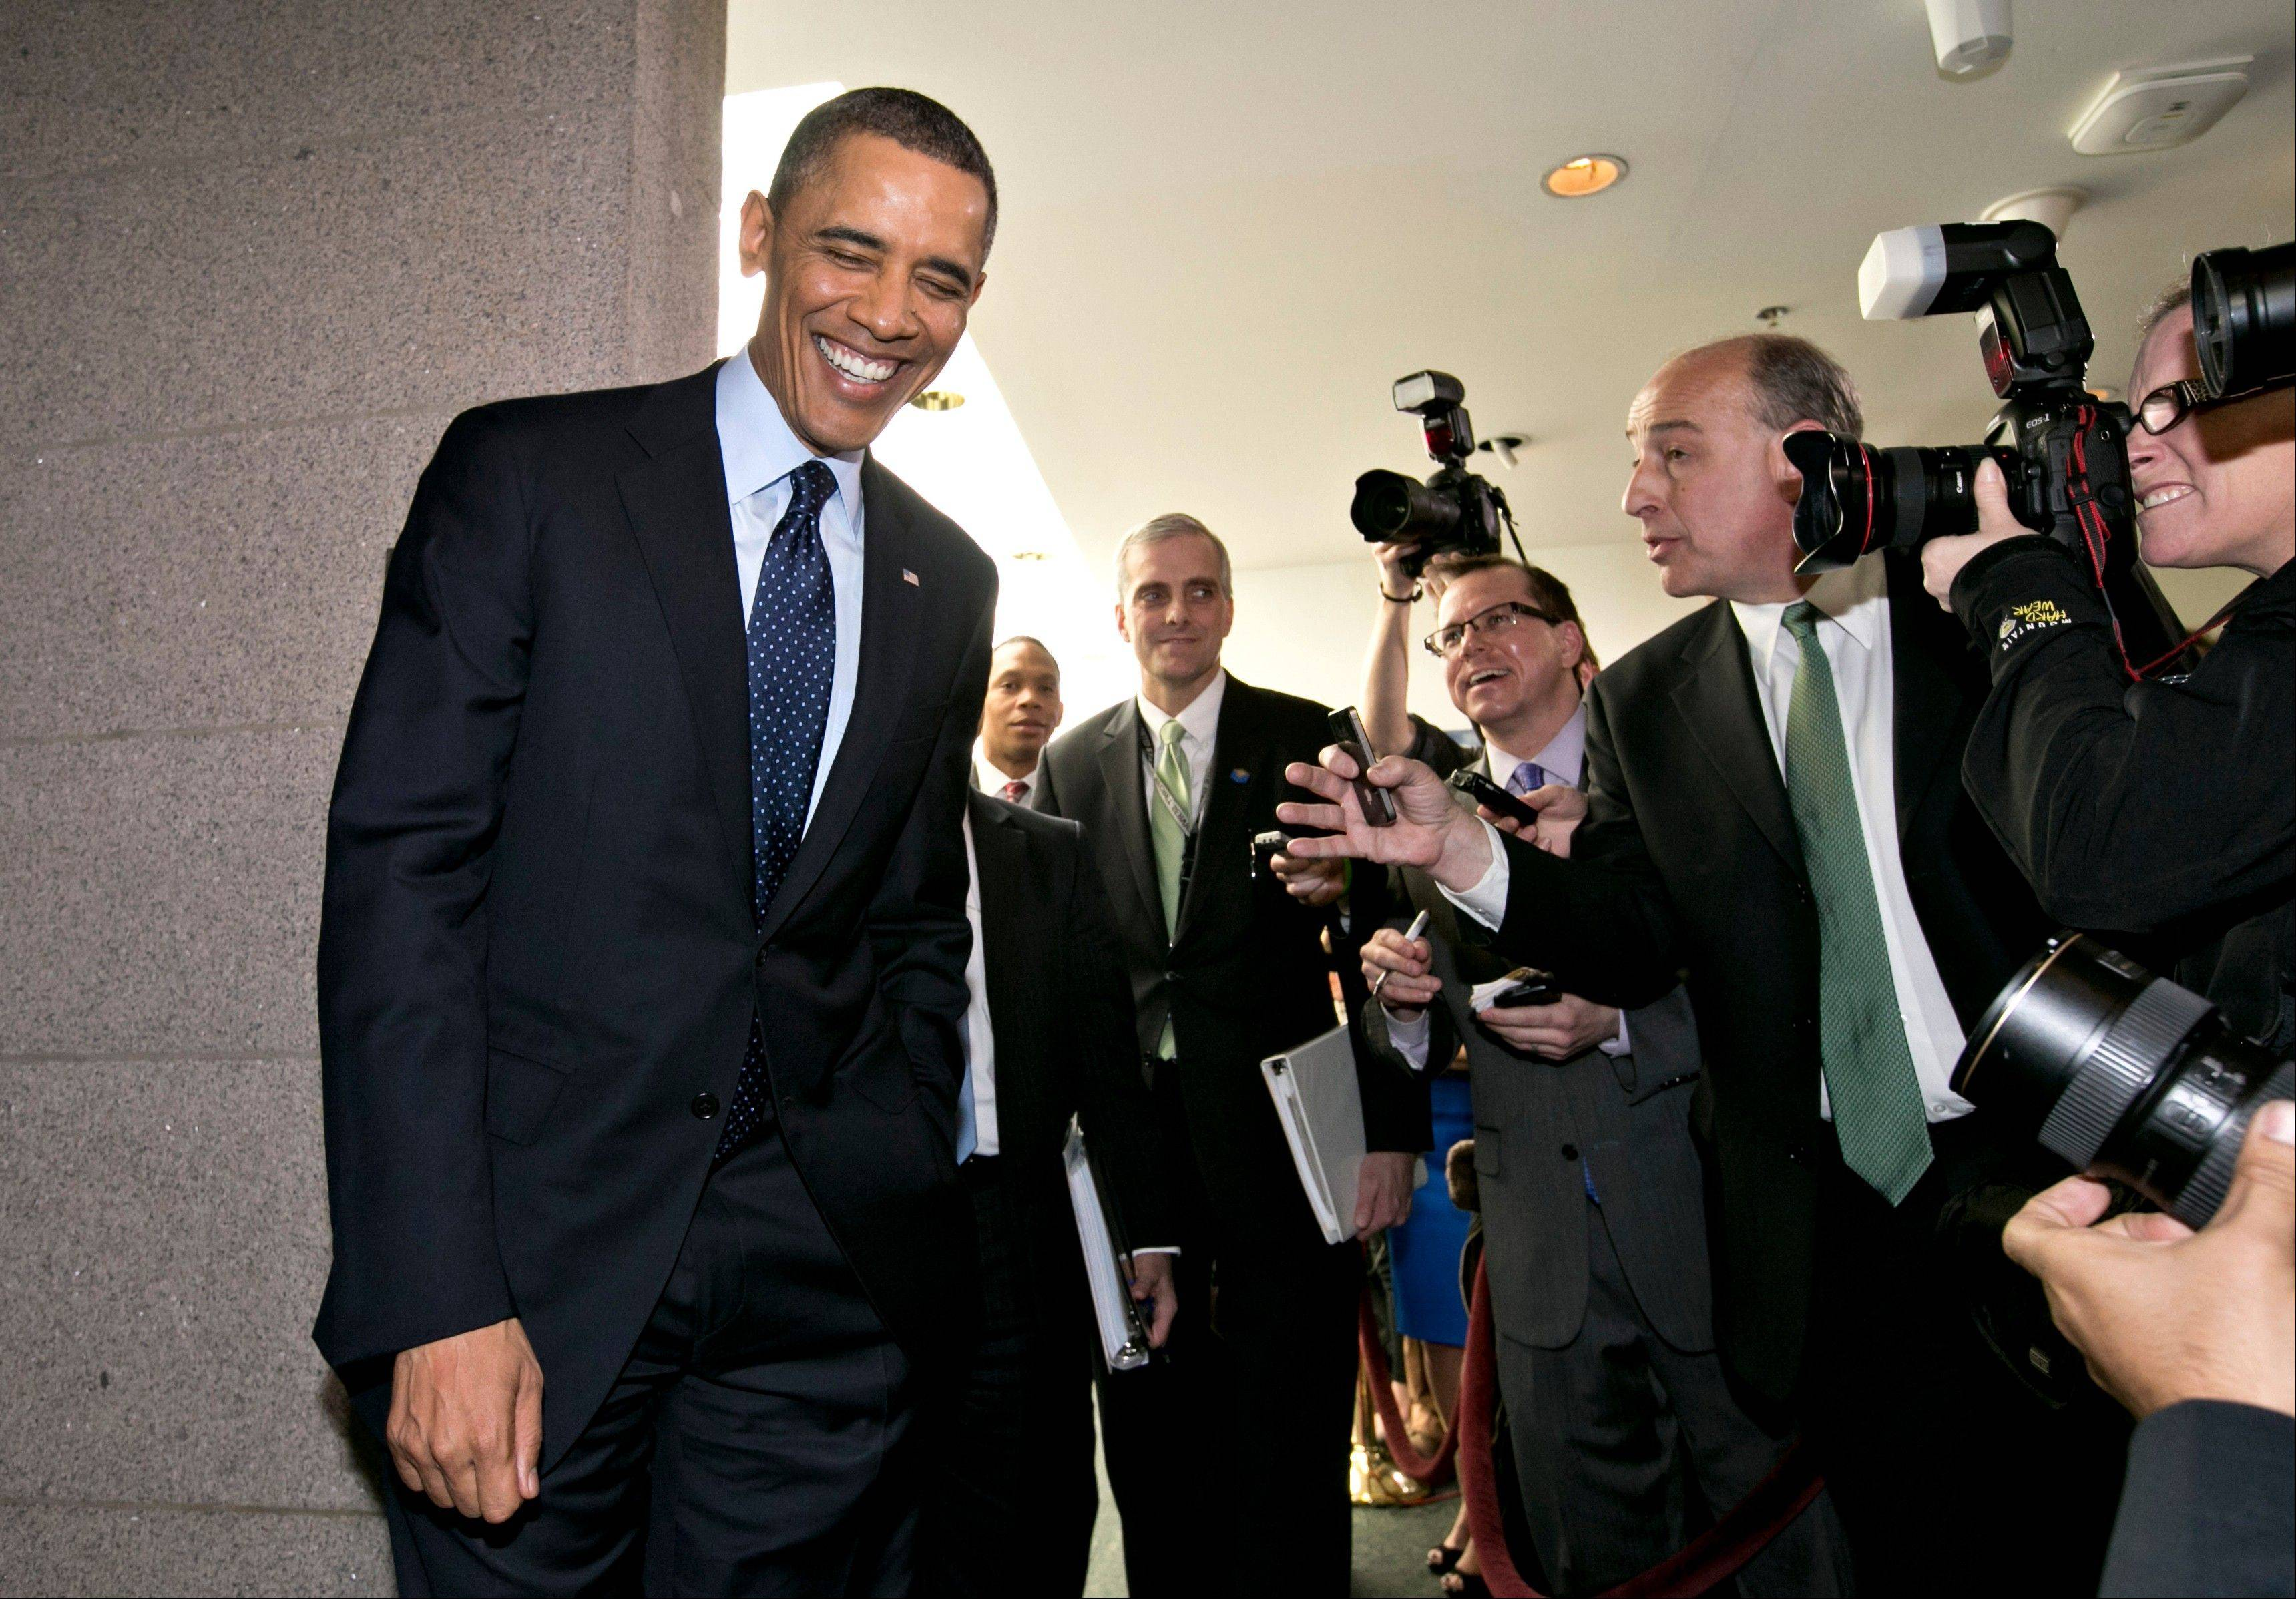 President Barack Obama turns to reporters Wednesday as he leaves the Capitol. Obama is pushing Congress to authorize more federally funded research into clean energy technologies that can wean automobiles off oil.